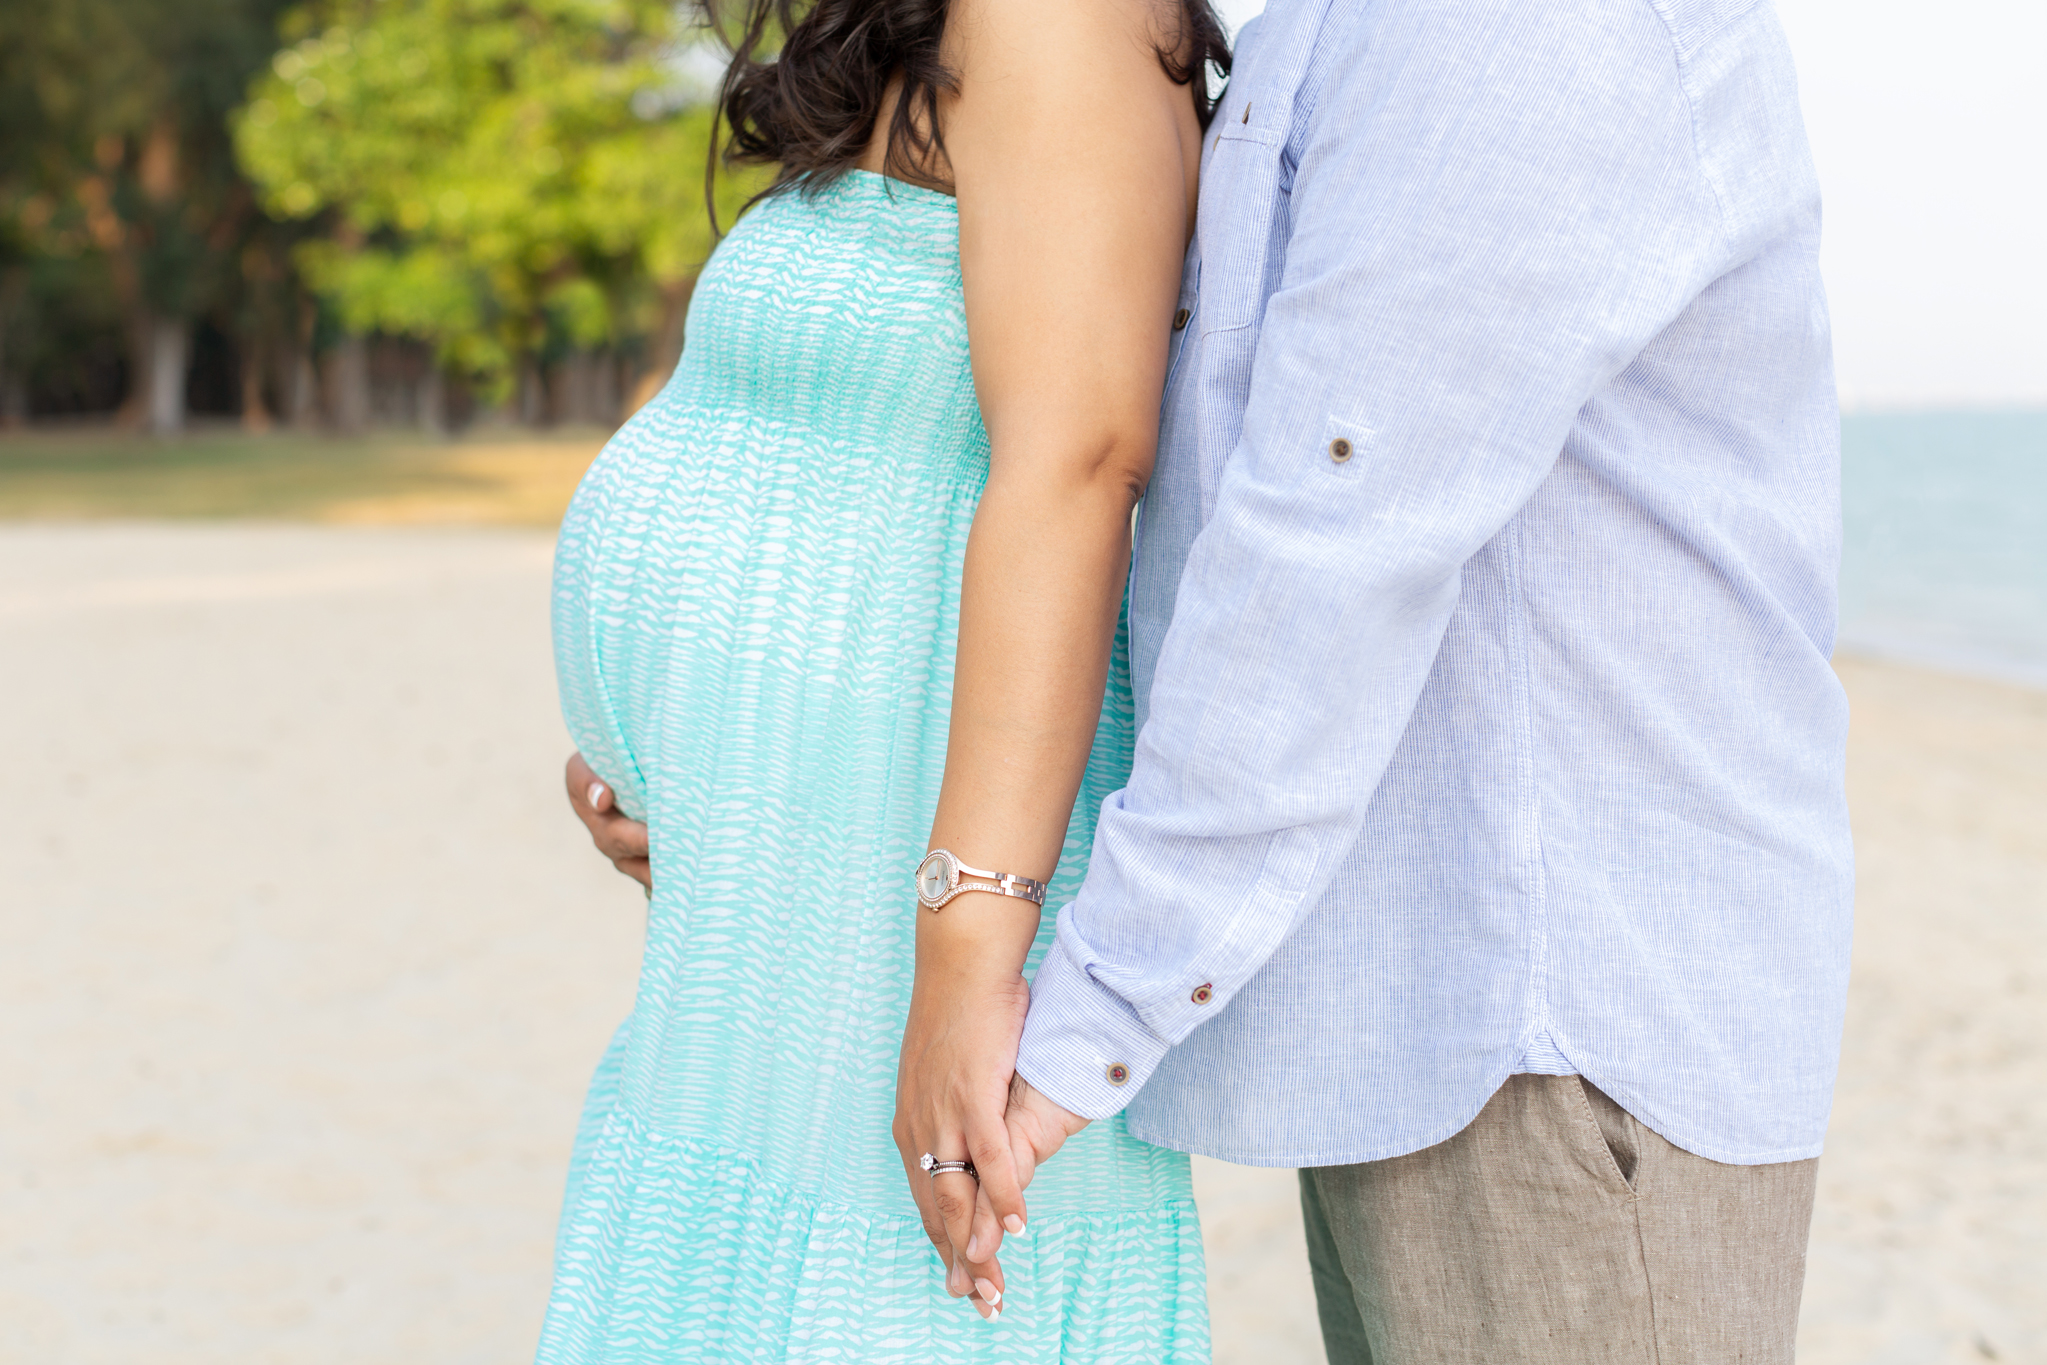 best maternity photographer in singapore, expat photographer in singapore, maternity photoshoot in singapore, maternity session on east coast beach